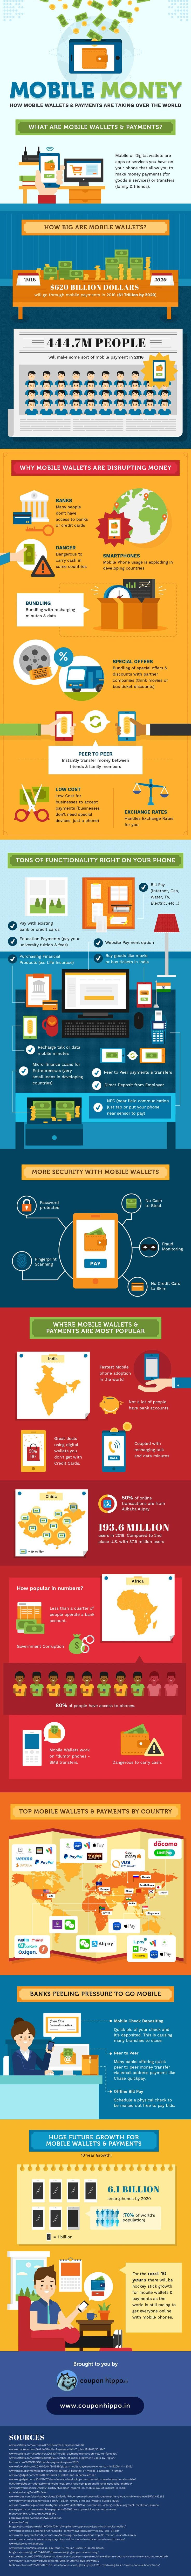 mobile wallet fintech infographic